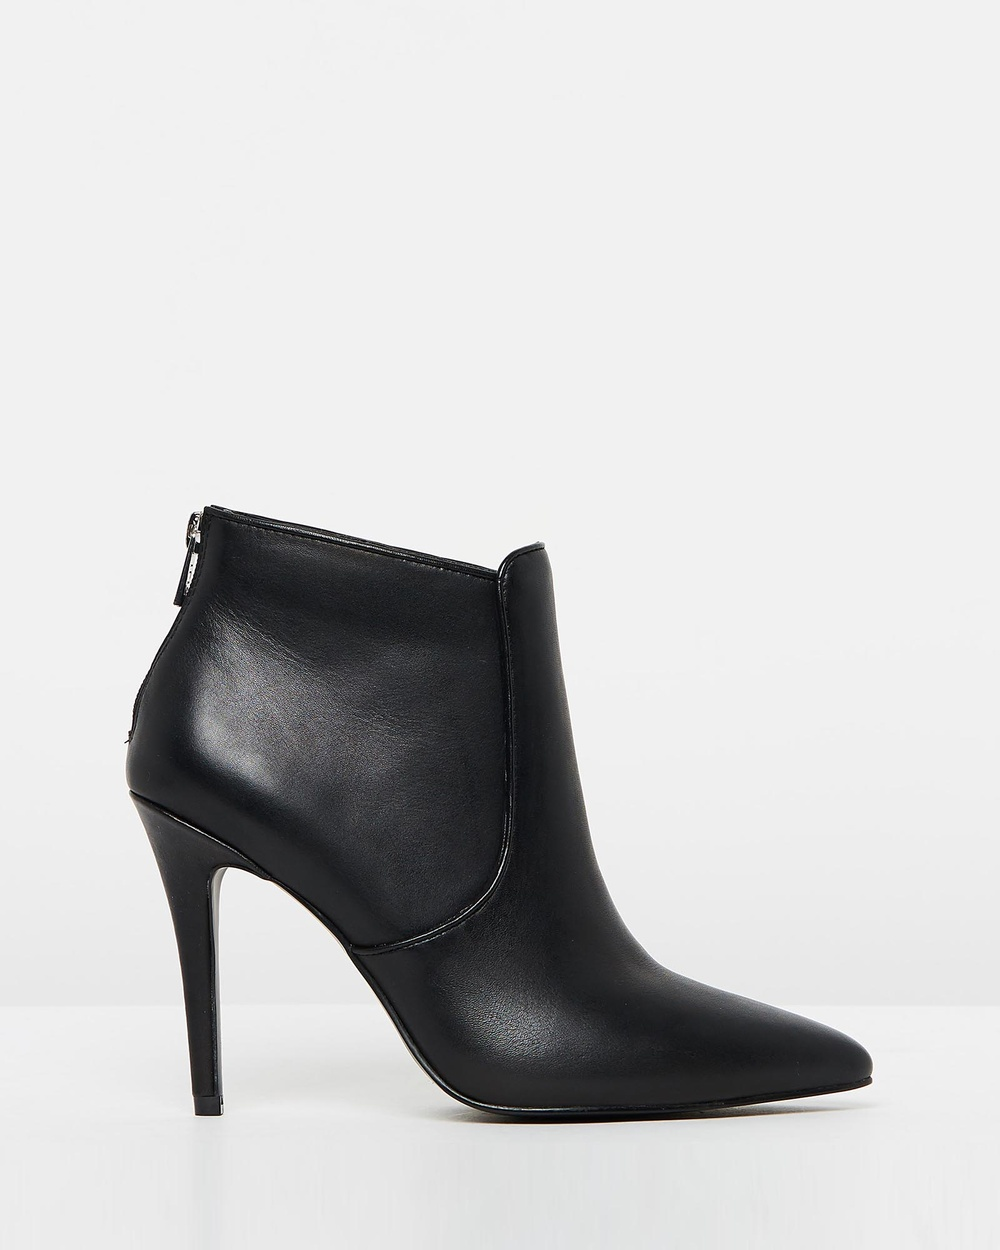 IRIS Footwear Dakota Heels Black Dakota